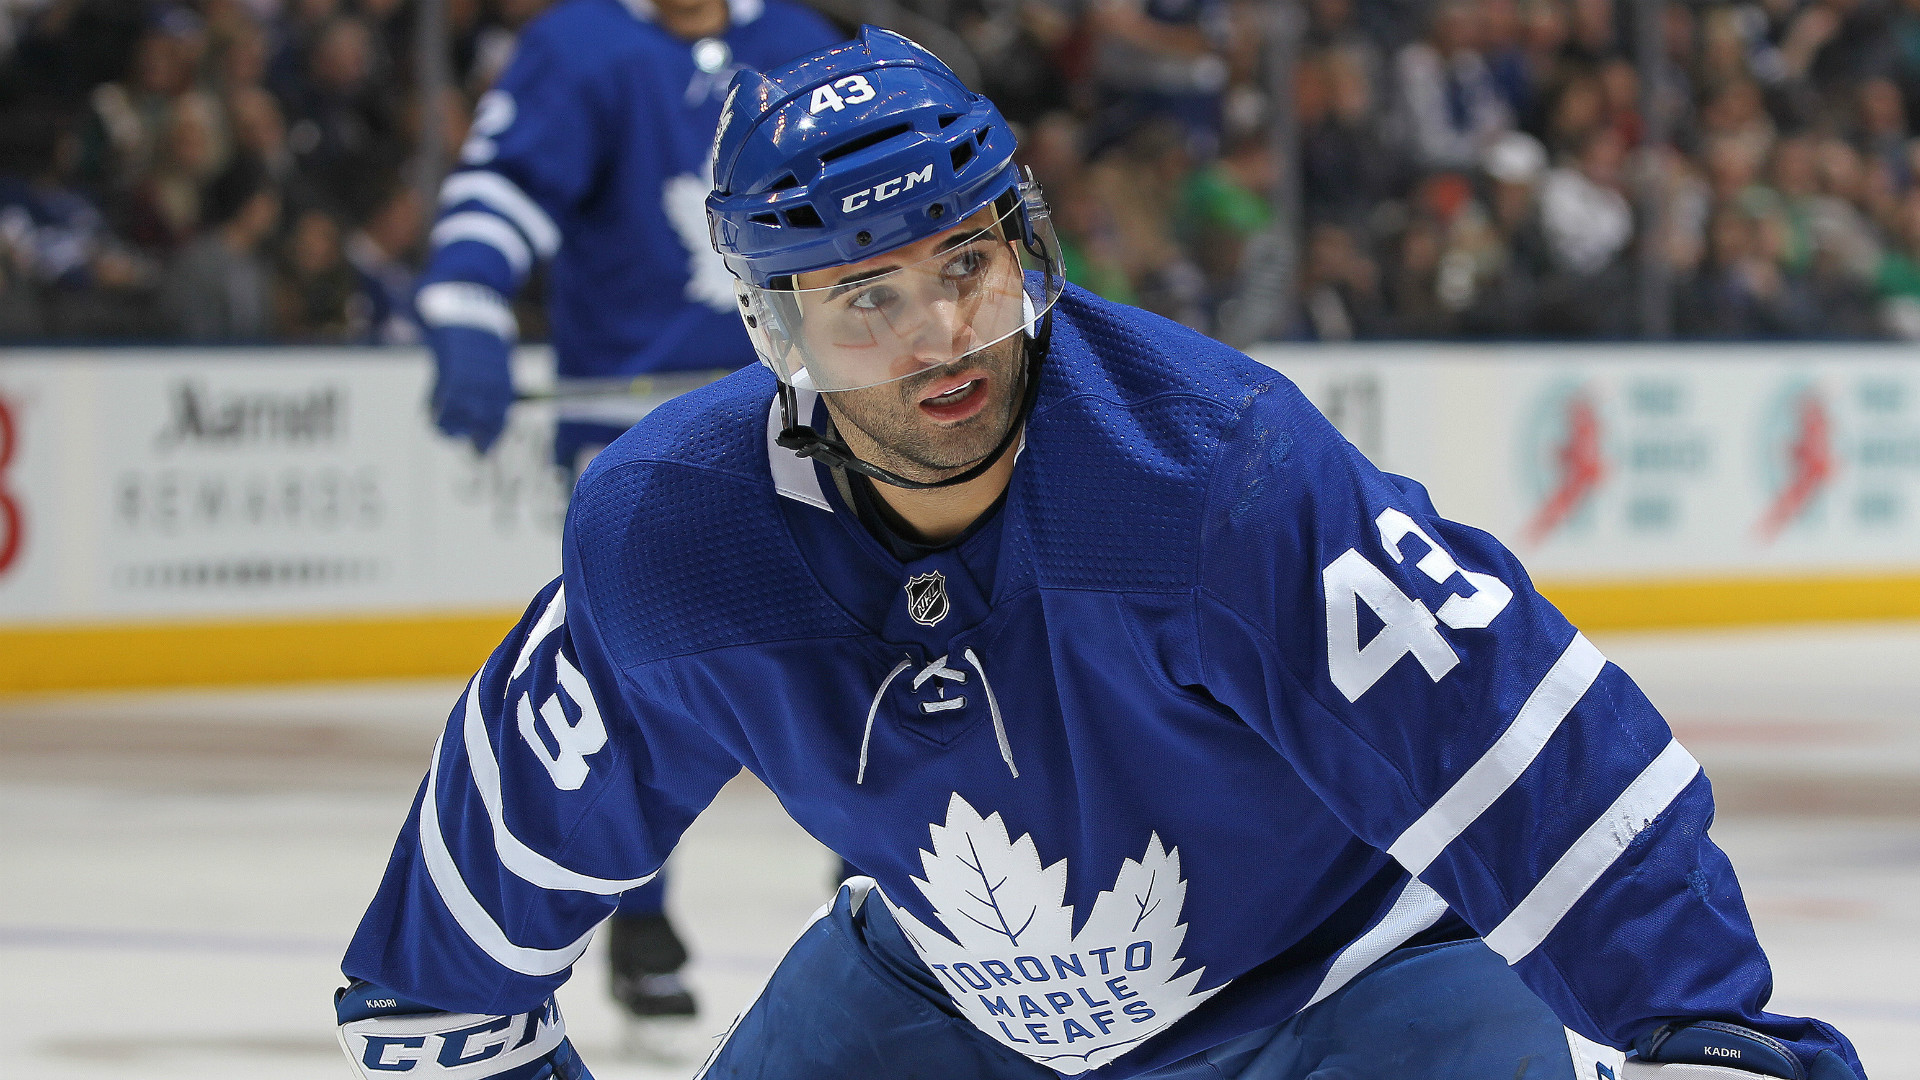 Leafs' Kadri suspended for 3 games for hit on Bruins' Wingels